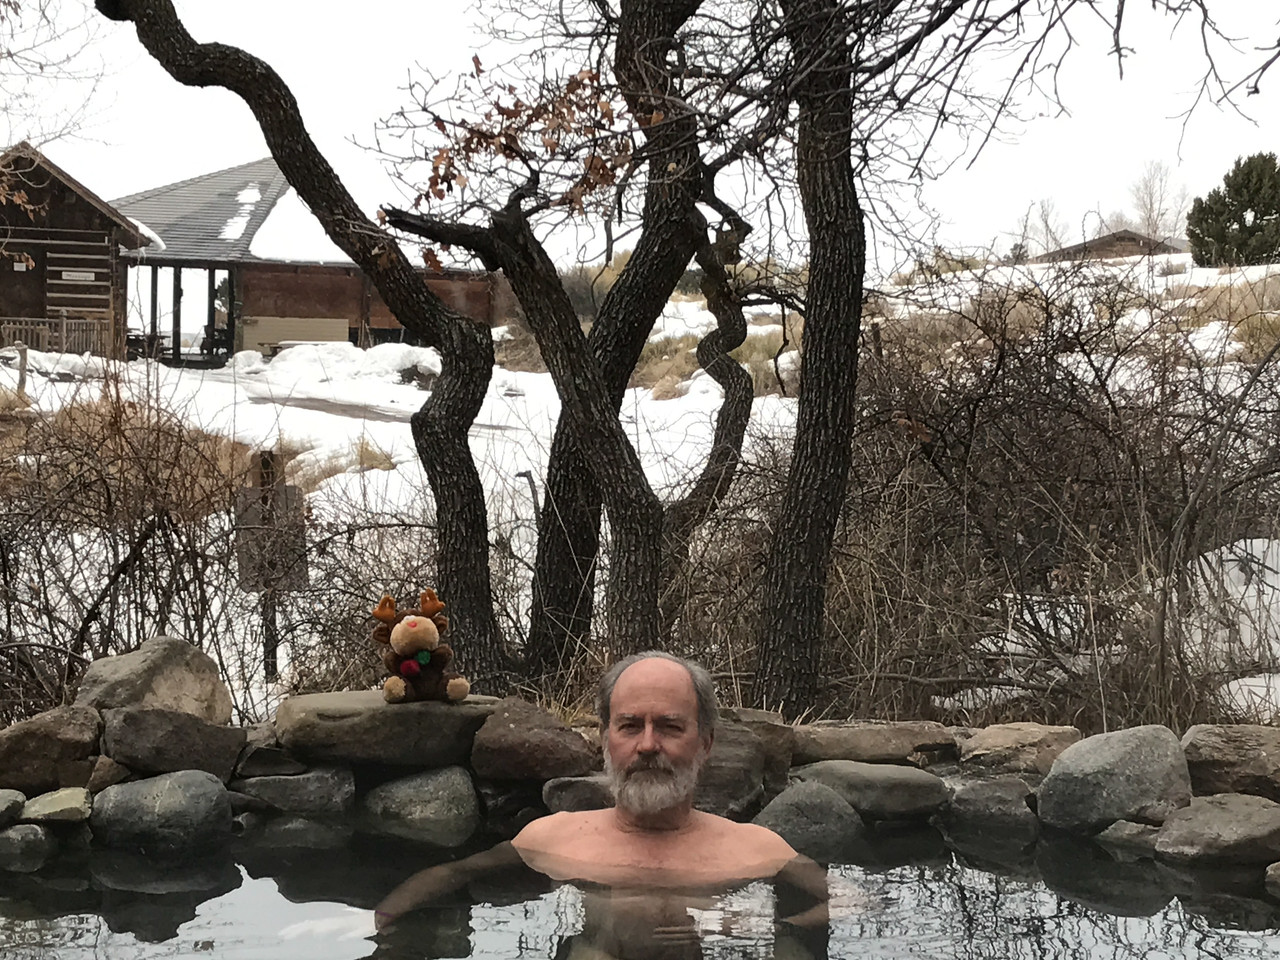 Our first soak at Orvis Hot Springs in the Sangre de Christo Mountains above the San Luis Valley of Colorado. Most of the water at these springs is warm, not hot. Two new pools utilize excess electricity from the pelton wheel to heat the water to around 103 degrees. Great soaking!